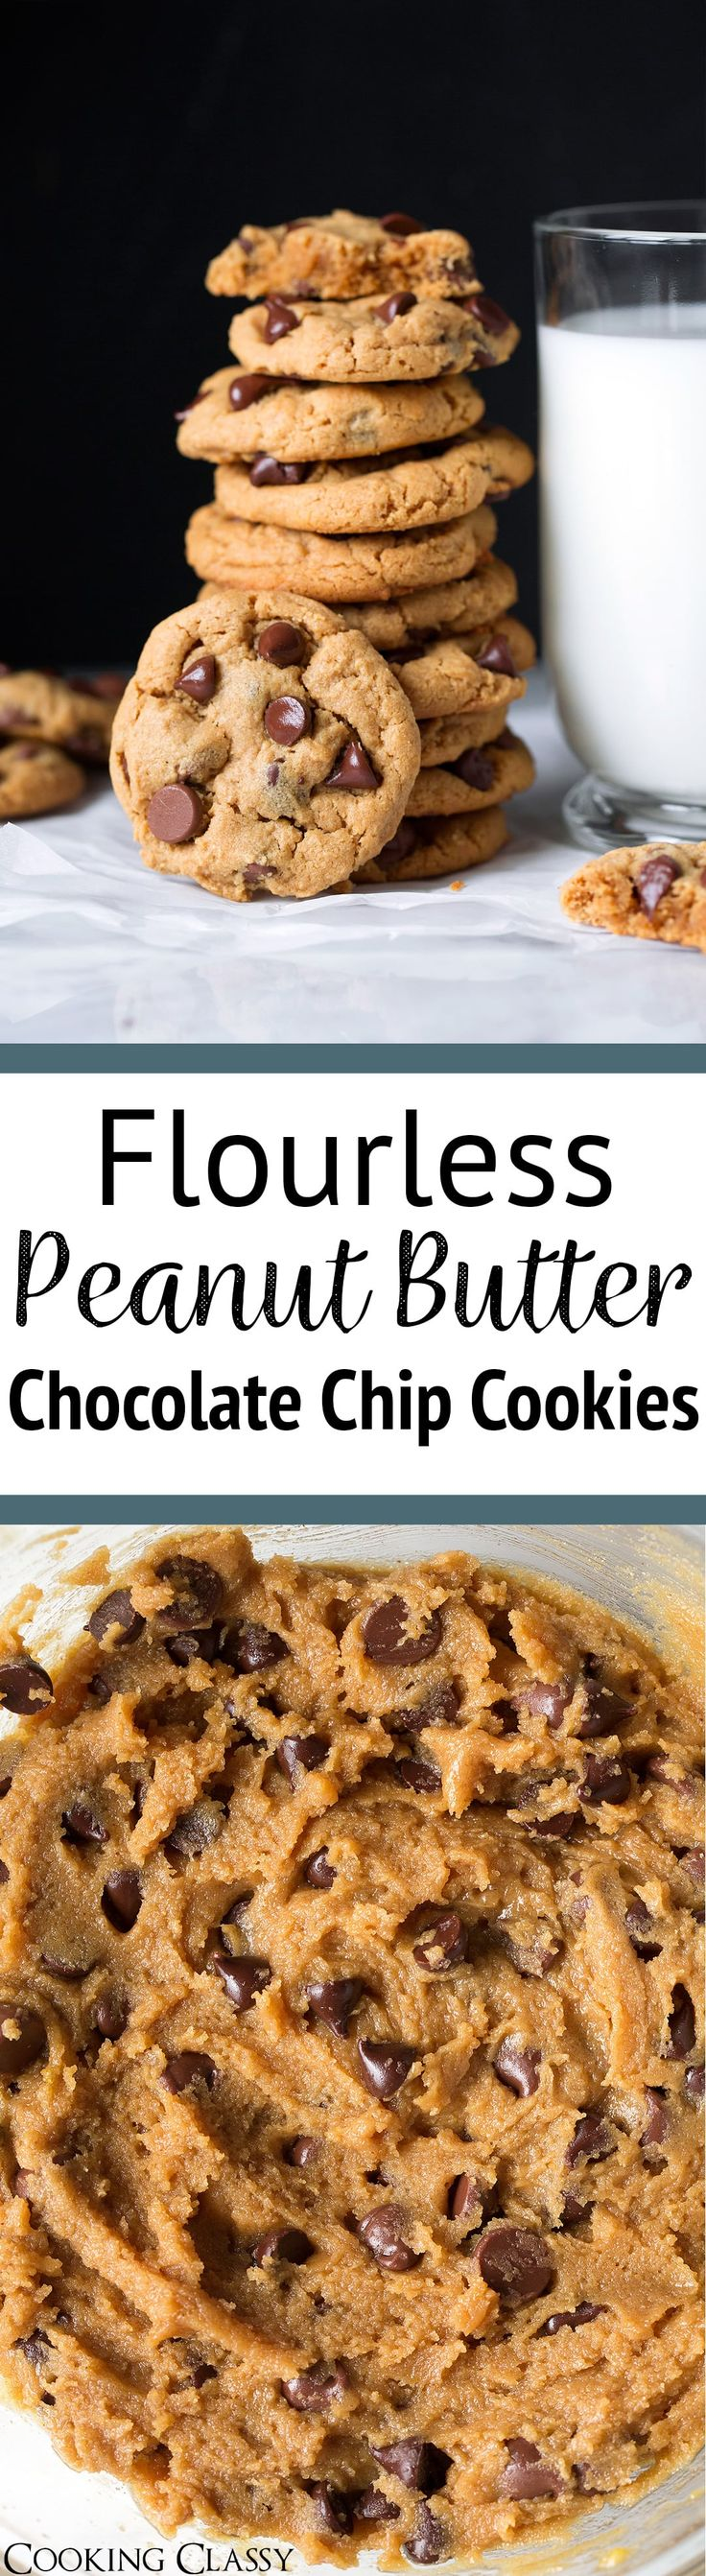 Flourless Peanut Butter Cookies - These are the easiest cookies to make! They only need 6 ingredients that you likely always have on hand, a few minutes prep, and no mixer is required. And did I mention they taste absolutely delicious? Likely to become a family favorite! #flourless #peanutbuttercookies #dessert #cookies #easyrecipe